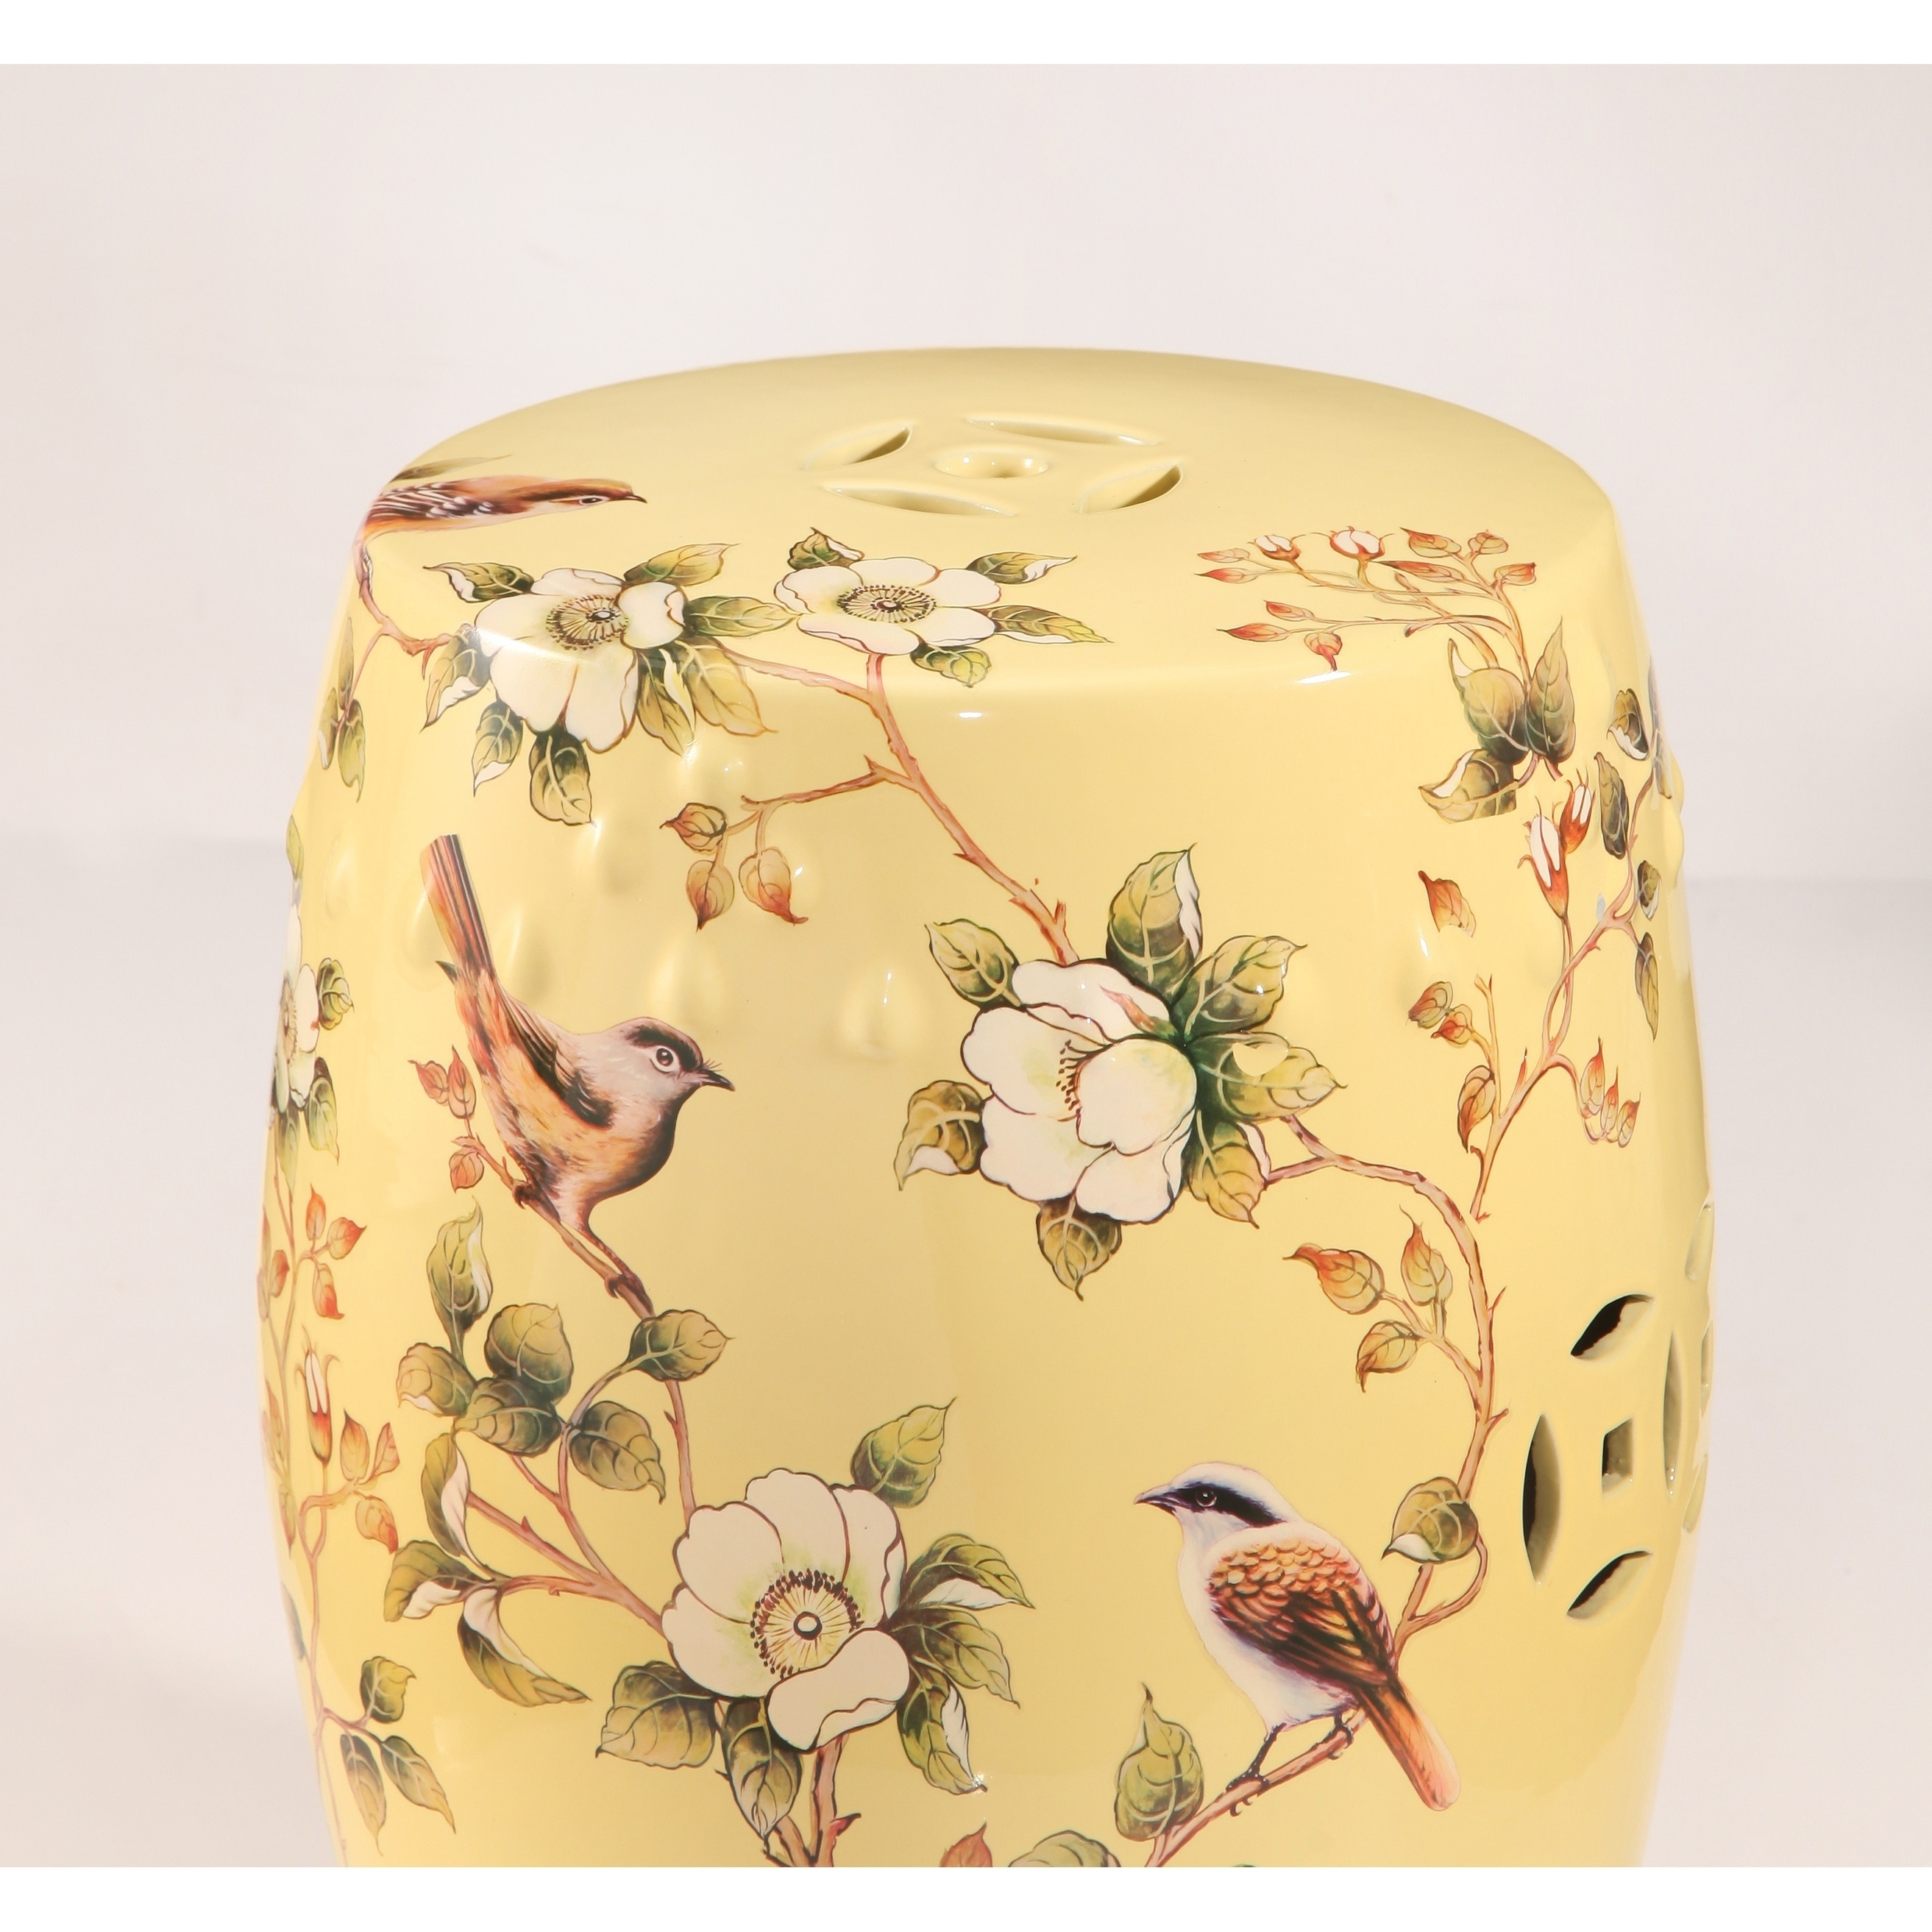 Shop Abbyson Sumida Hand Painted Floral Ceramic Garden Stool, Pale Yellow    Free Shipping Today   Overstock.com   18850727